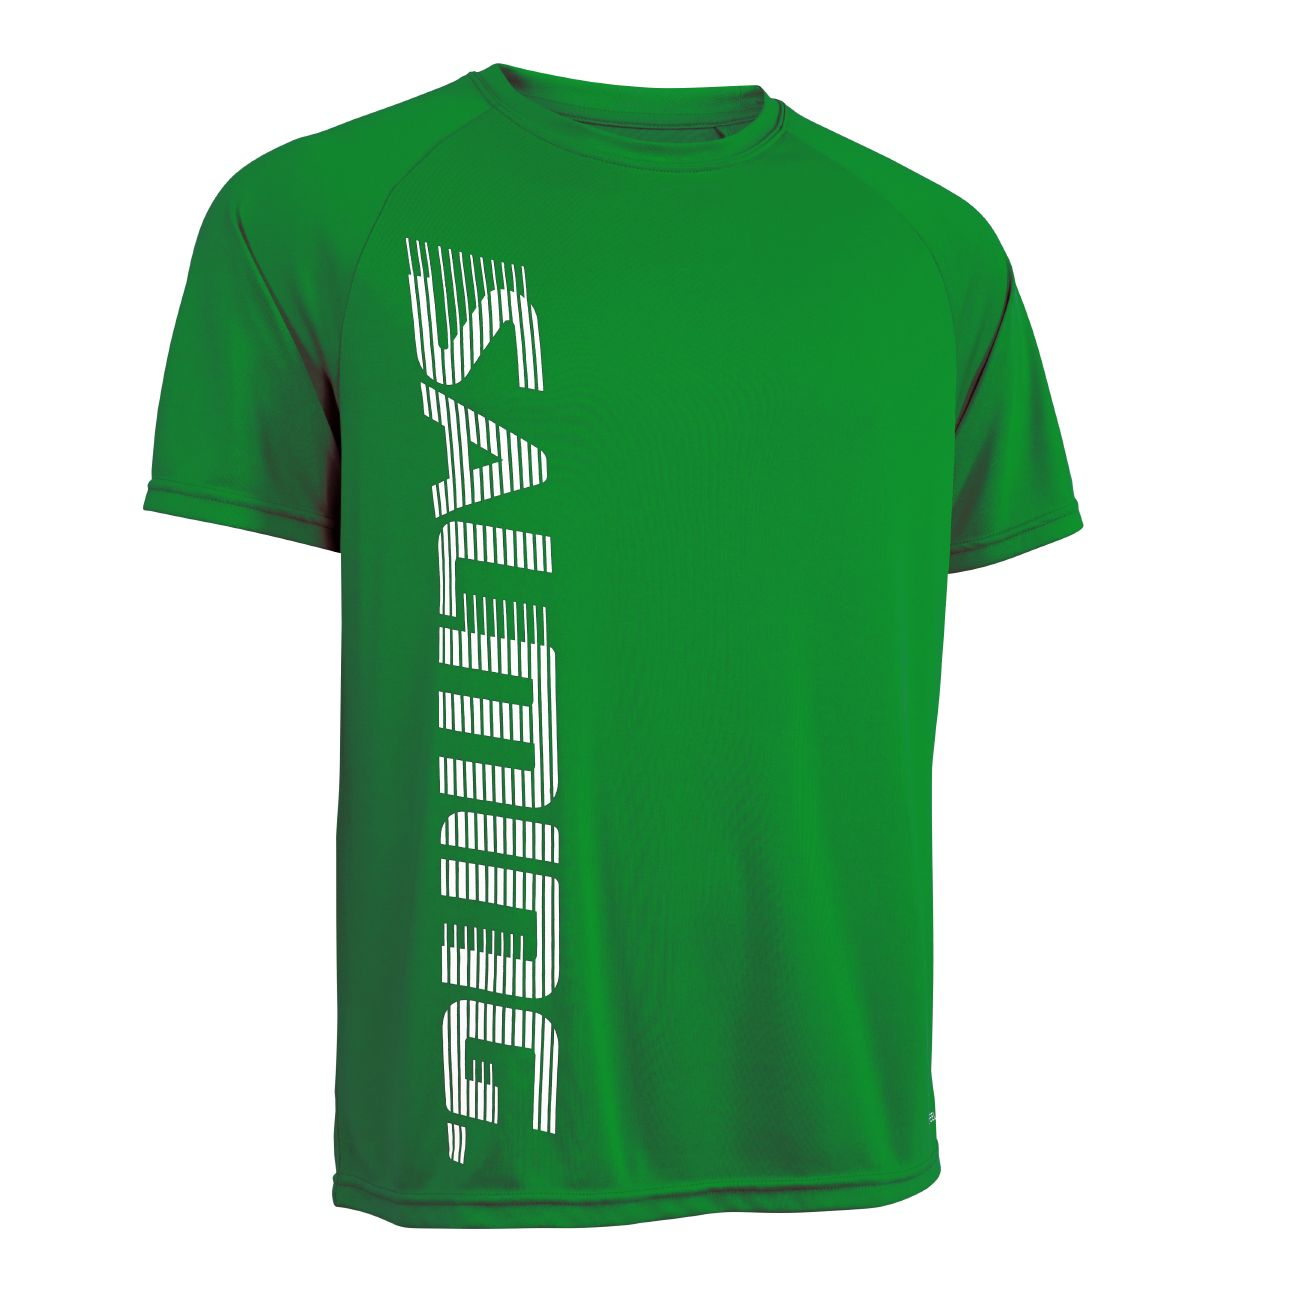 Salming Training Tee 2.0 Zelená, S